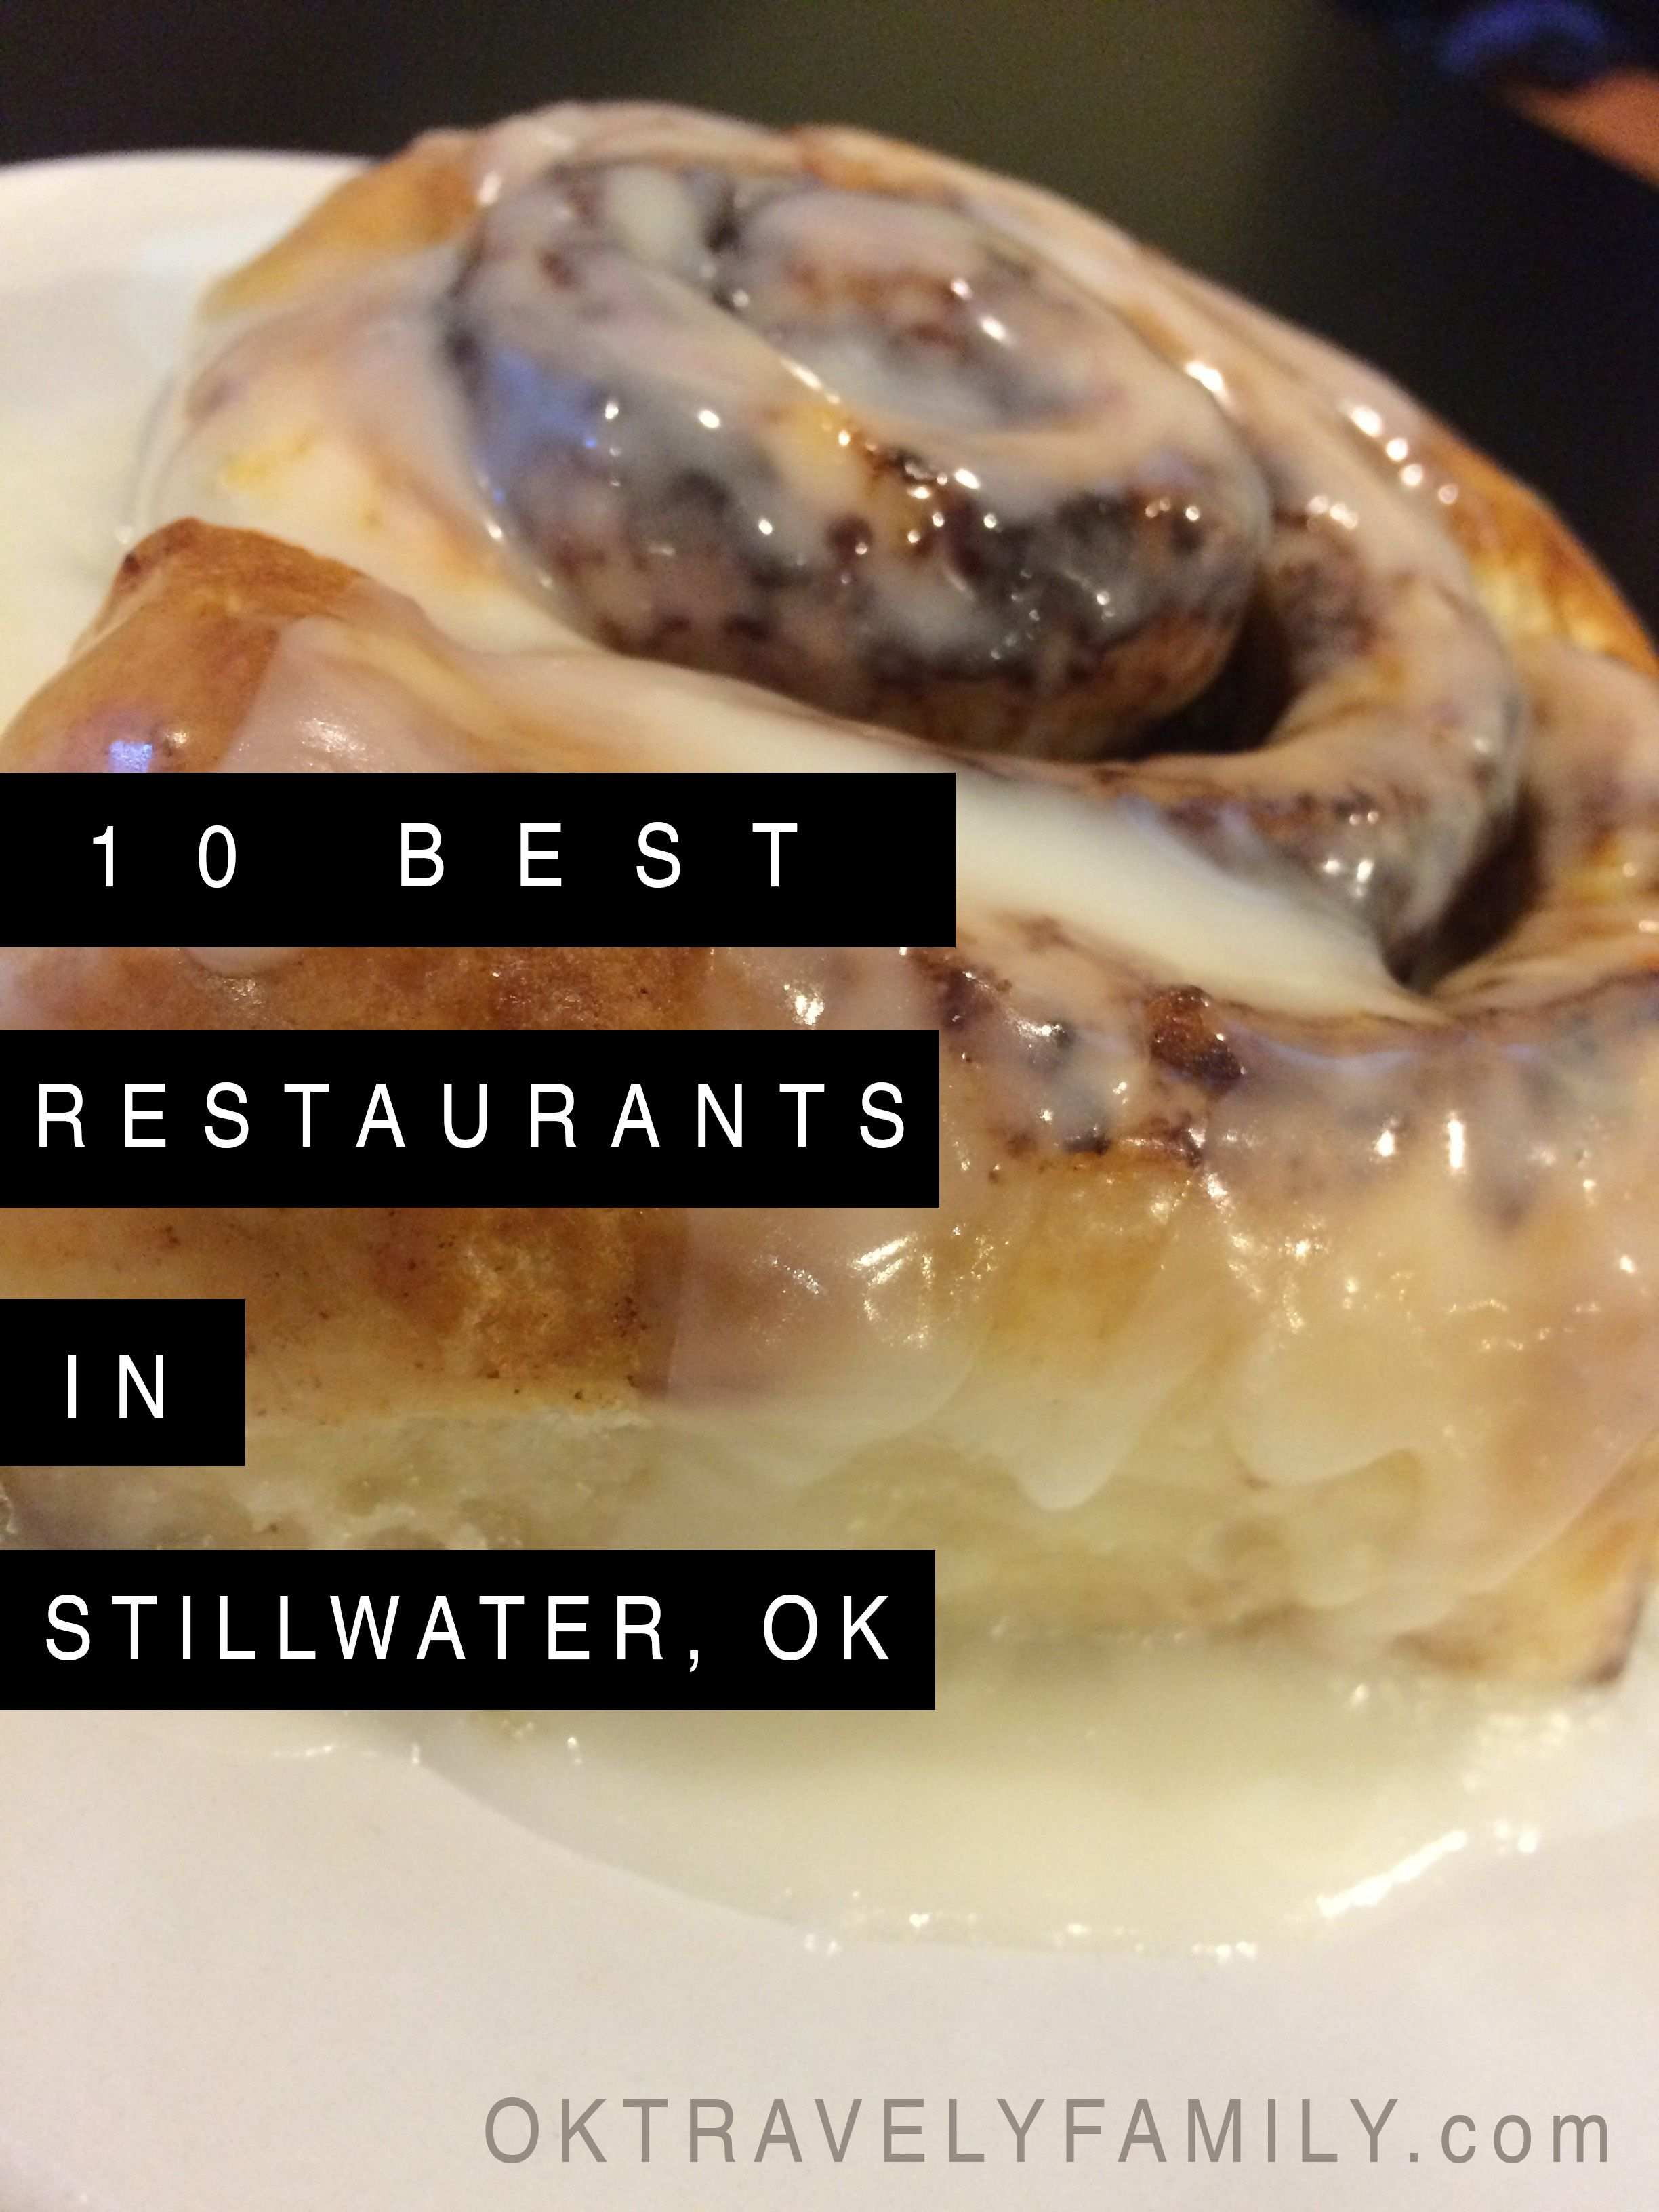 The 10 Best Restaurants In Stillwater Ok With Nearly 24 000 Students Enrolled At Oklahoma State And A City Potion Of 46 Is Quietly